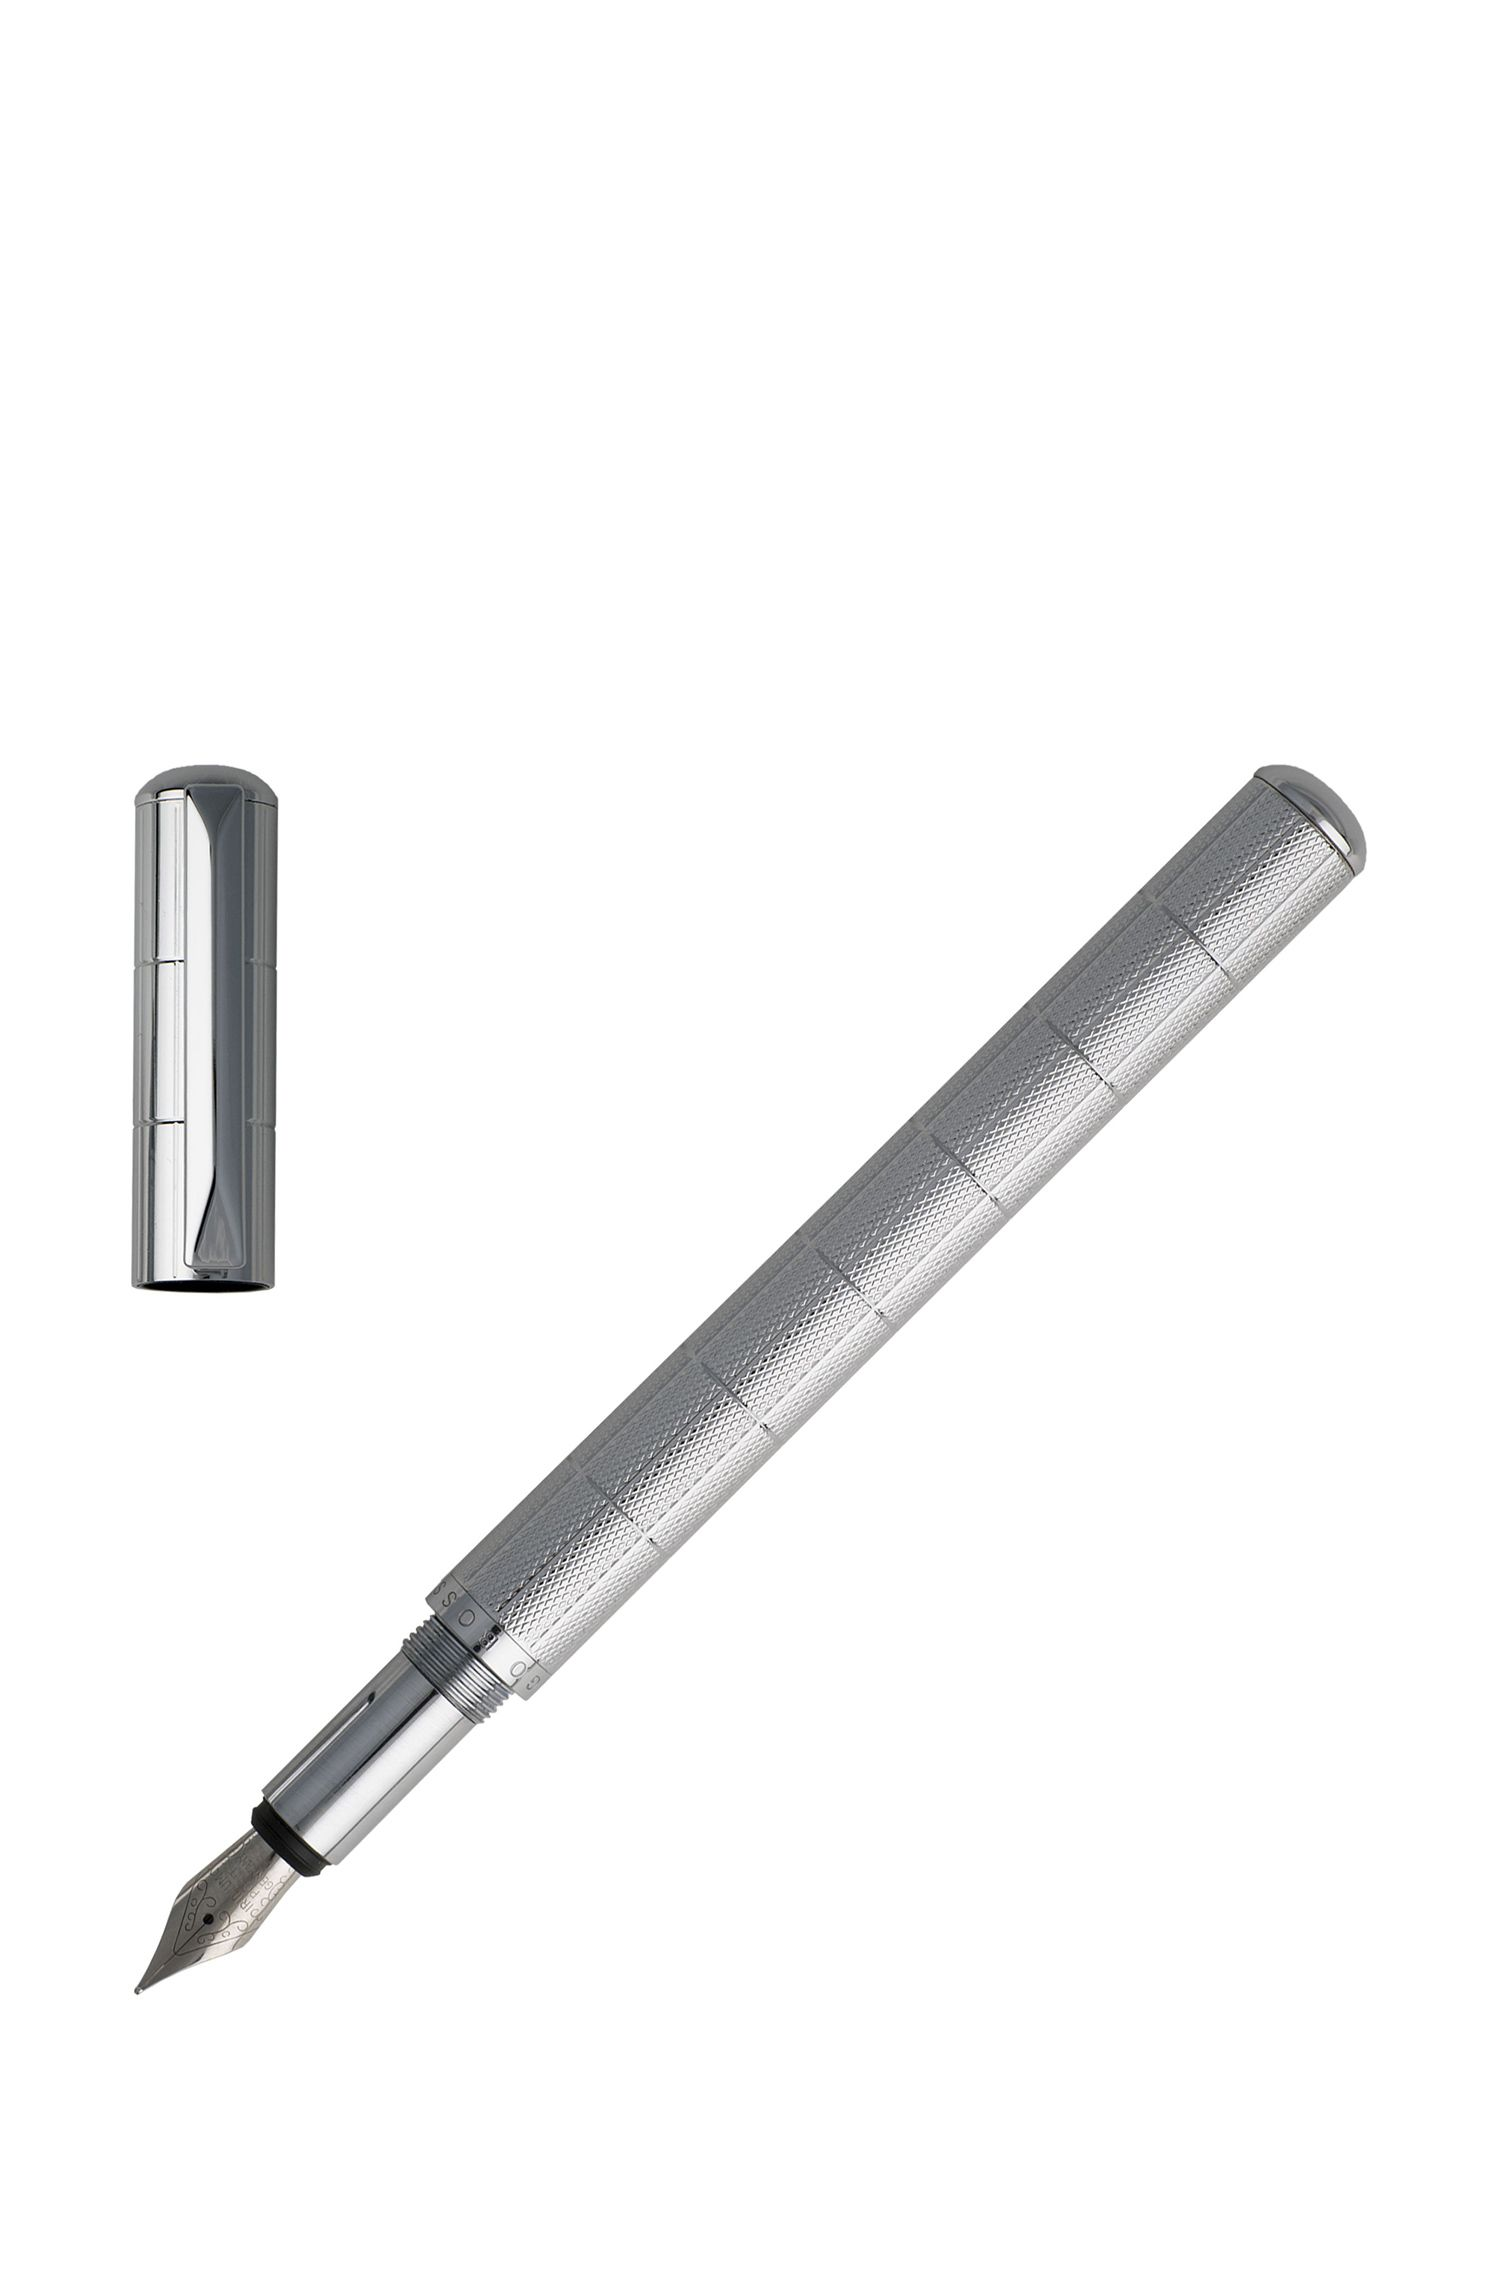 Sophisticated Diamond Ballpoint Pen | HSW5804